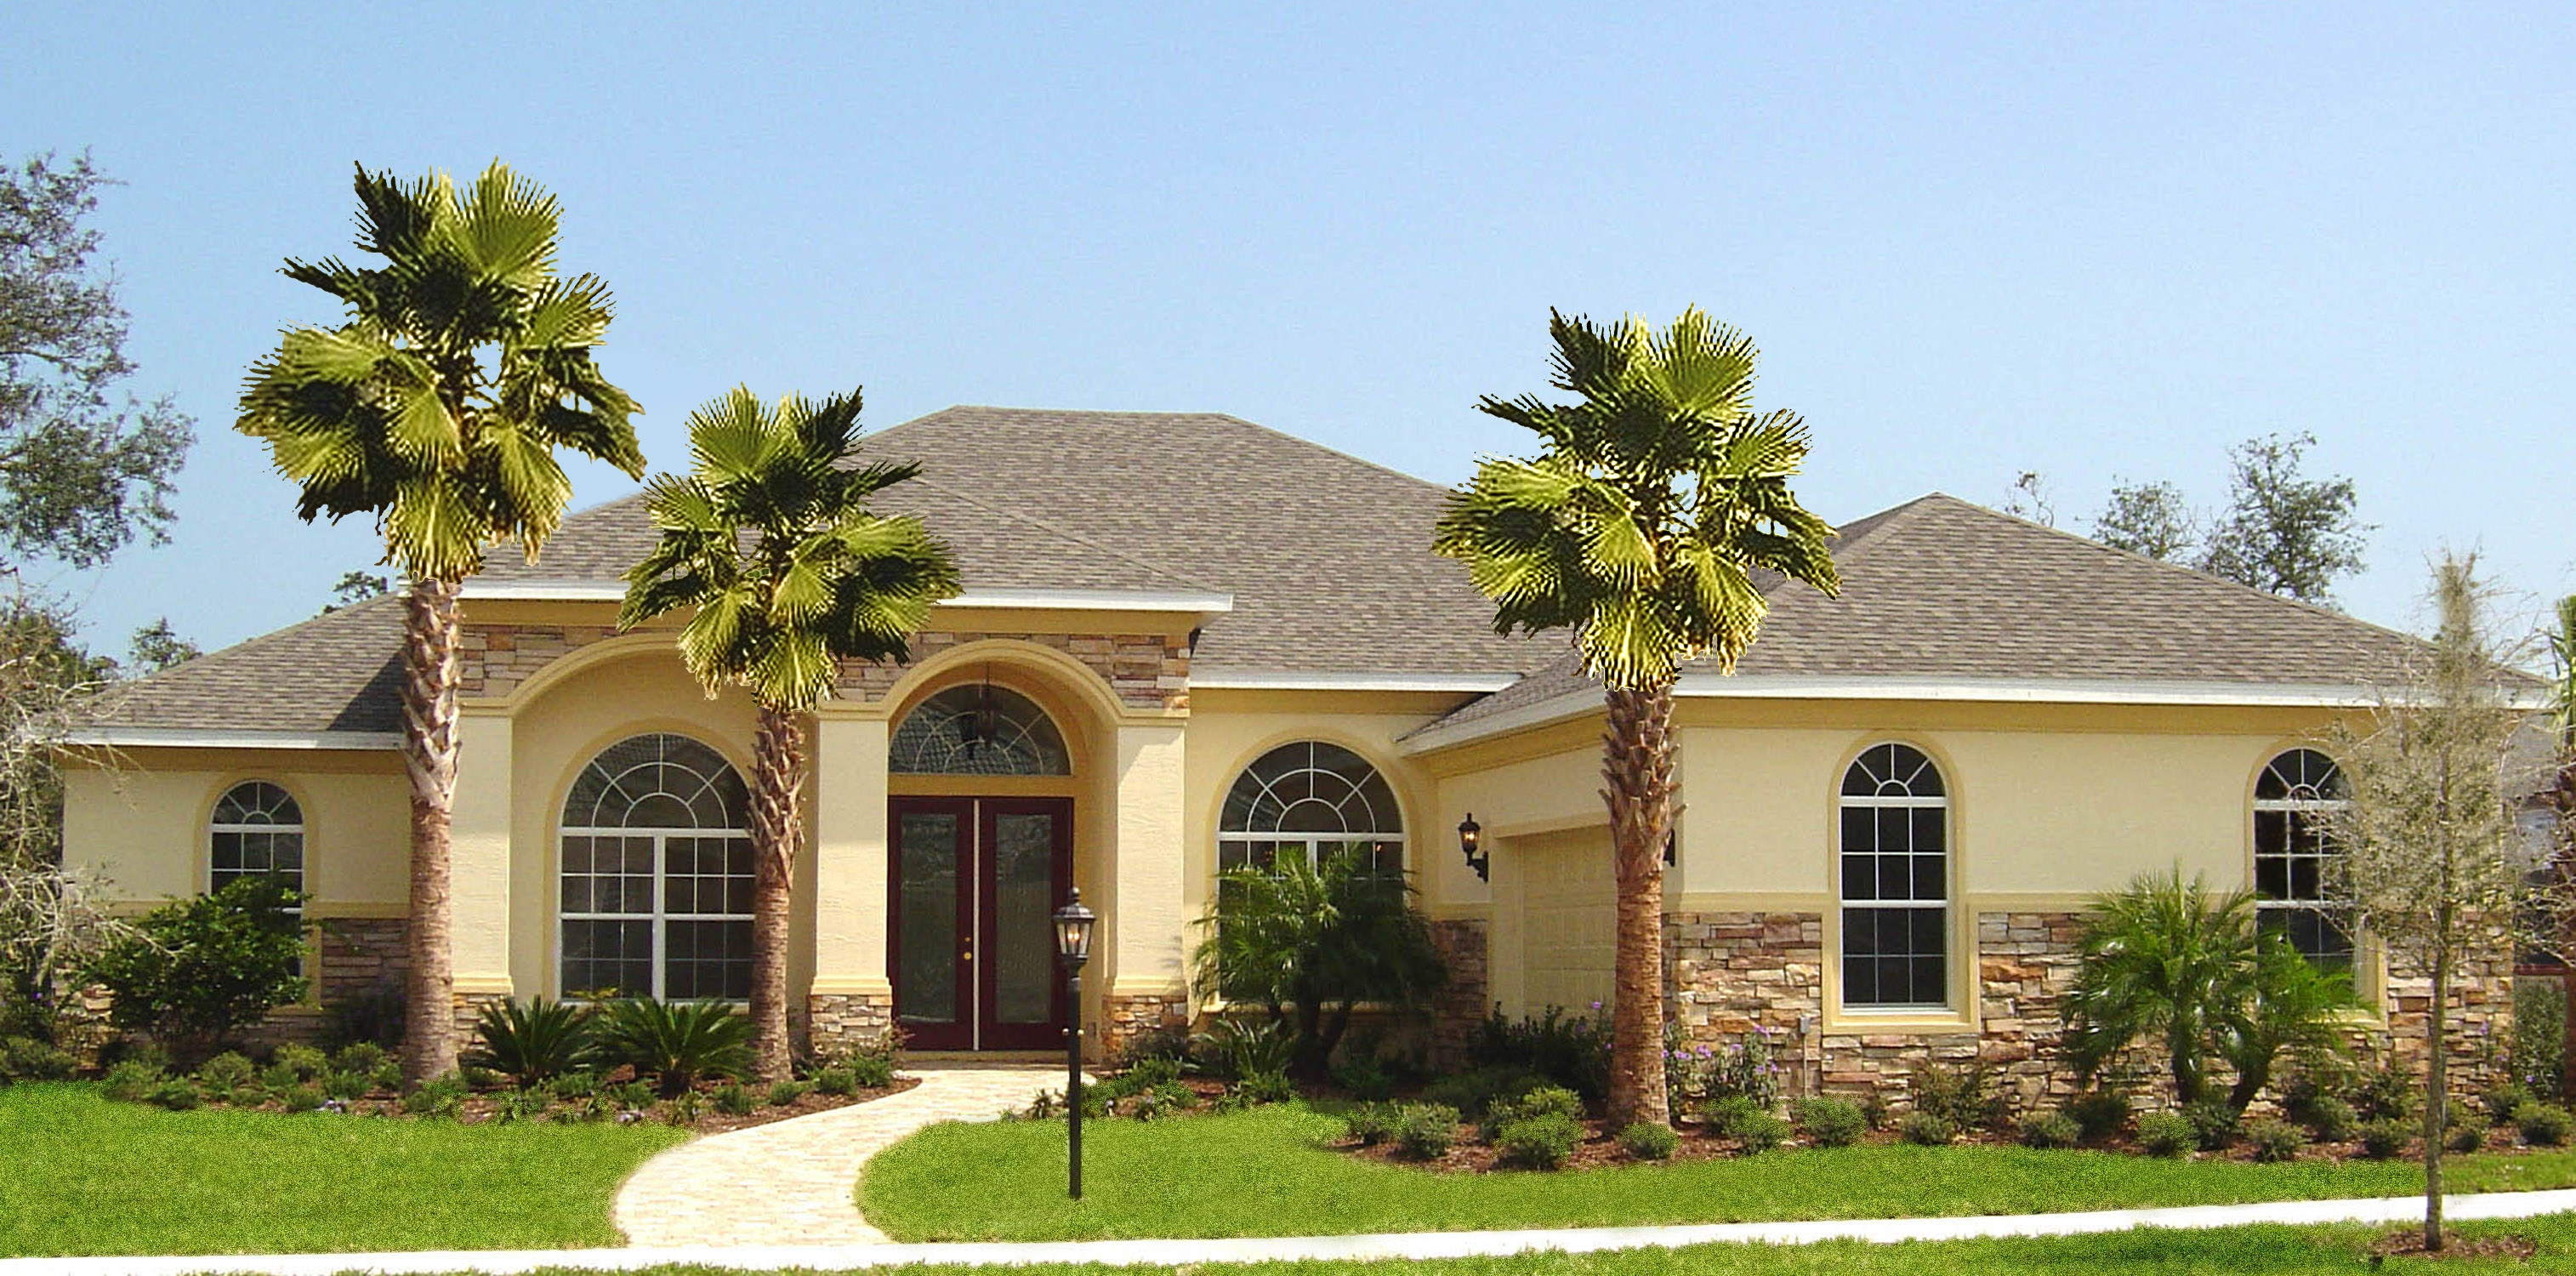 A clear choice realty llc your real estate company for for Florida house builders